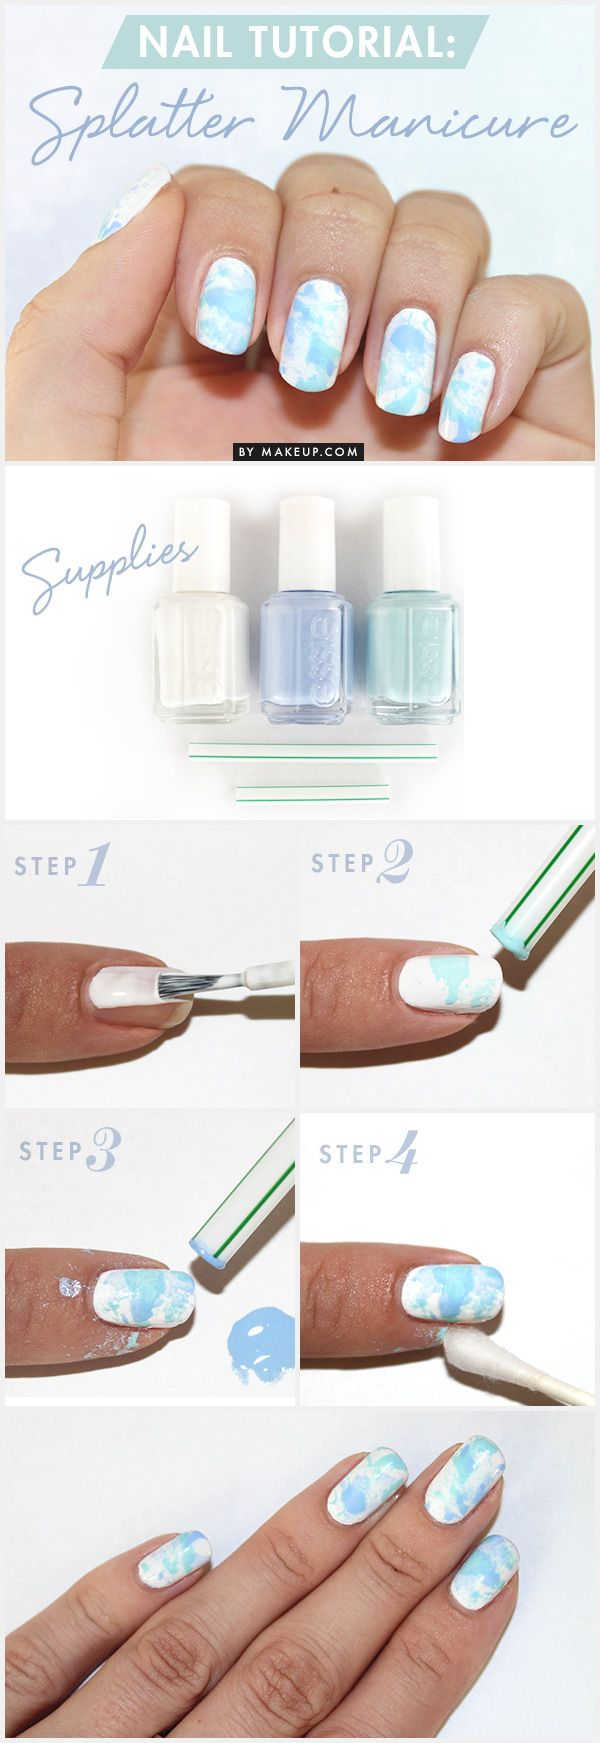 How To: Splatter Manicure: Weu0027ve Made The Color The Foundation For One